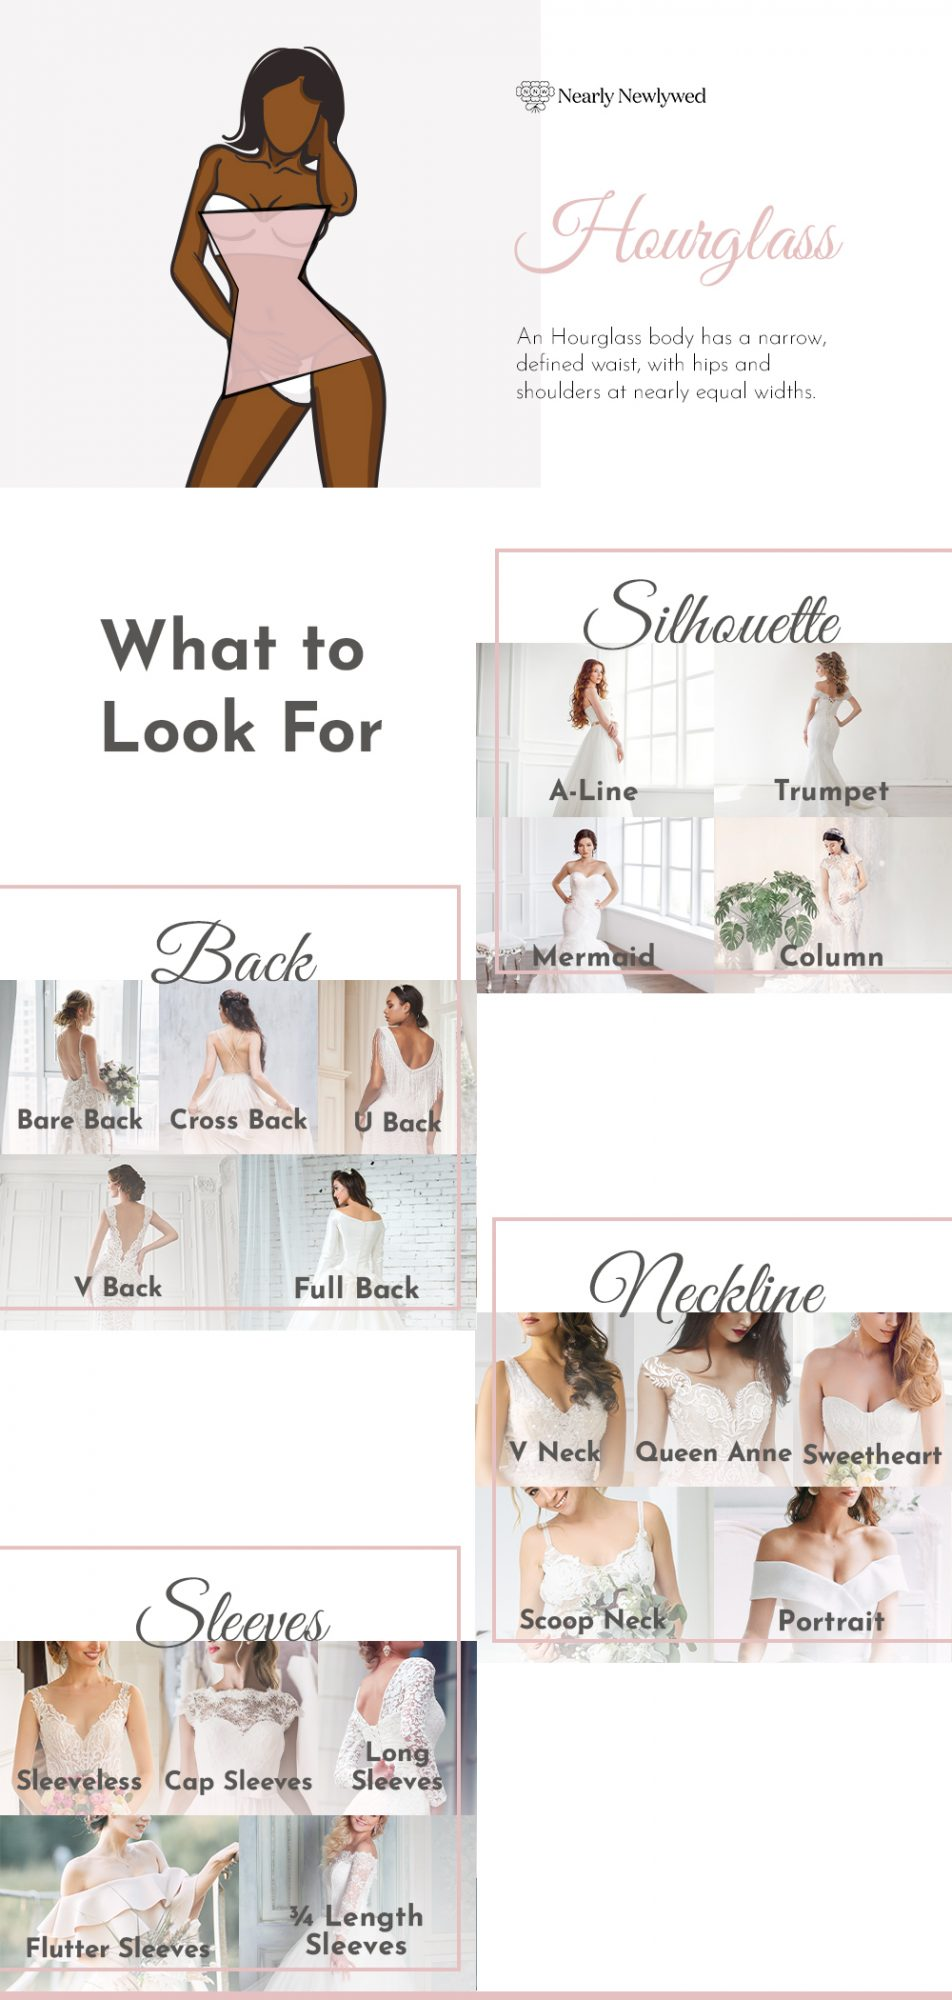 Wedding dress recommendations for Hourglass bodies